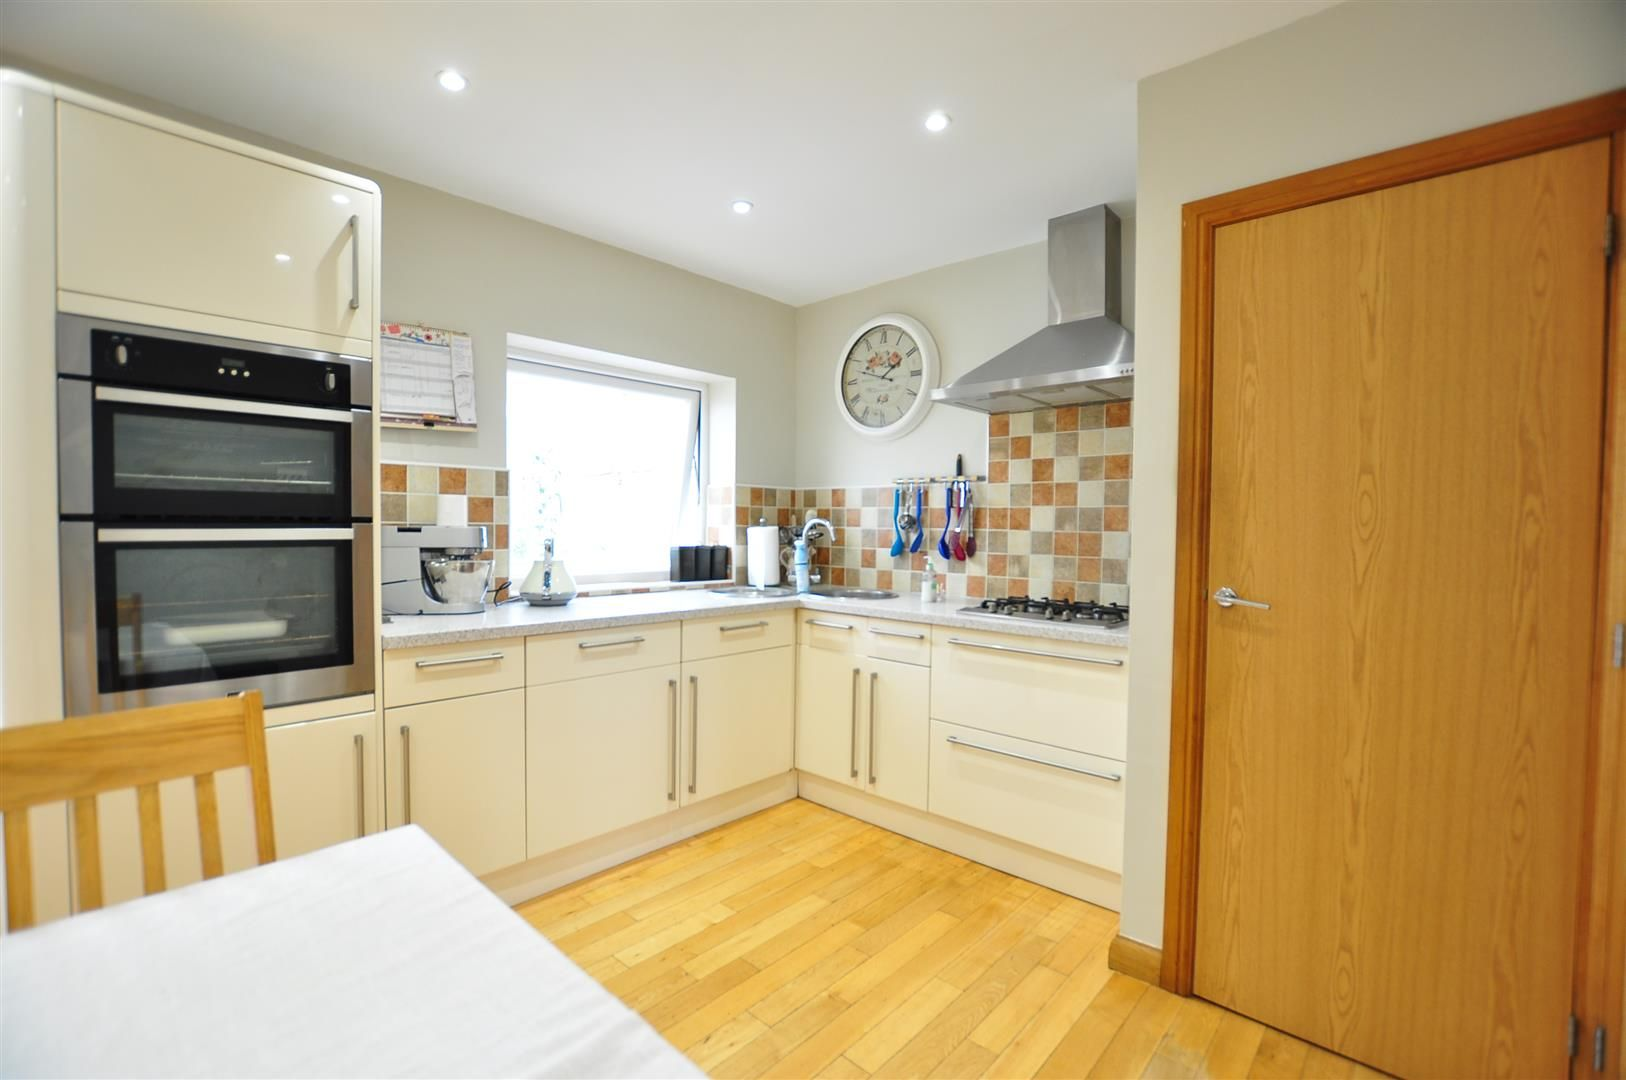 3 bed detached for sale  - Property Image 4